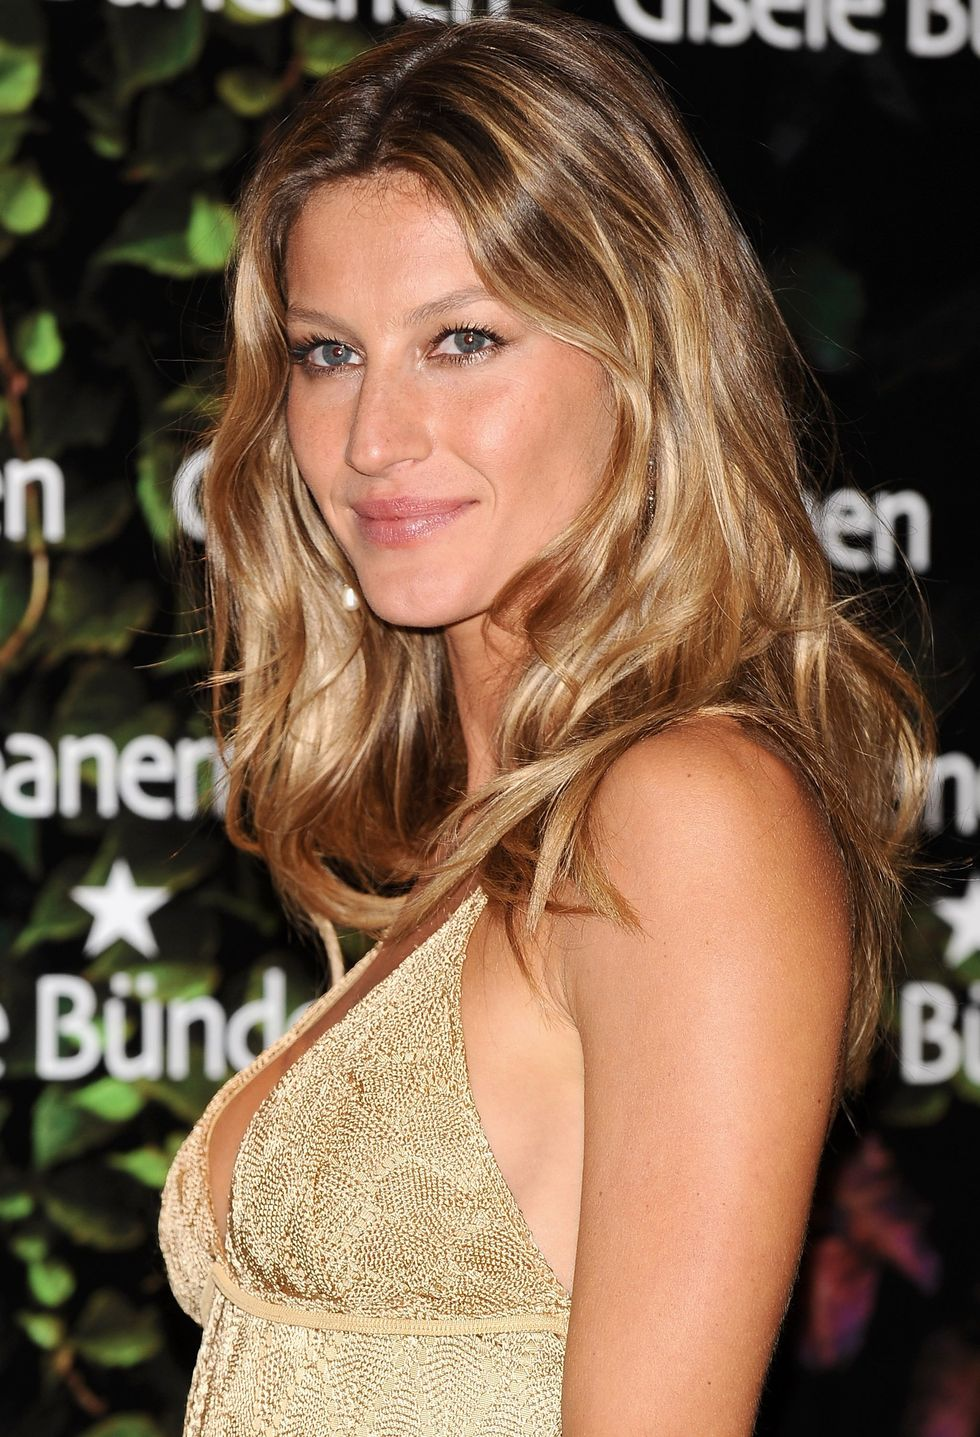 gisele-bundchen-presents-ipanema-gisele-bundchen-footwear-collection-01